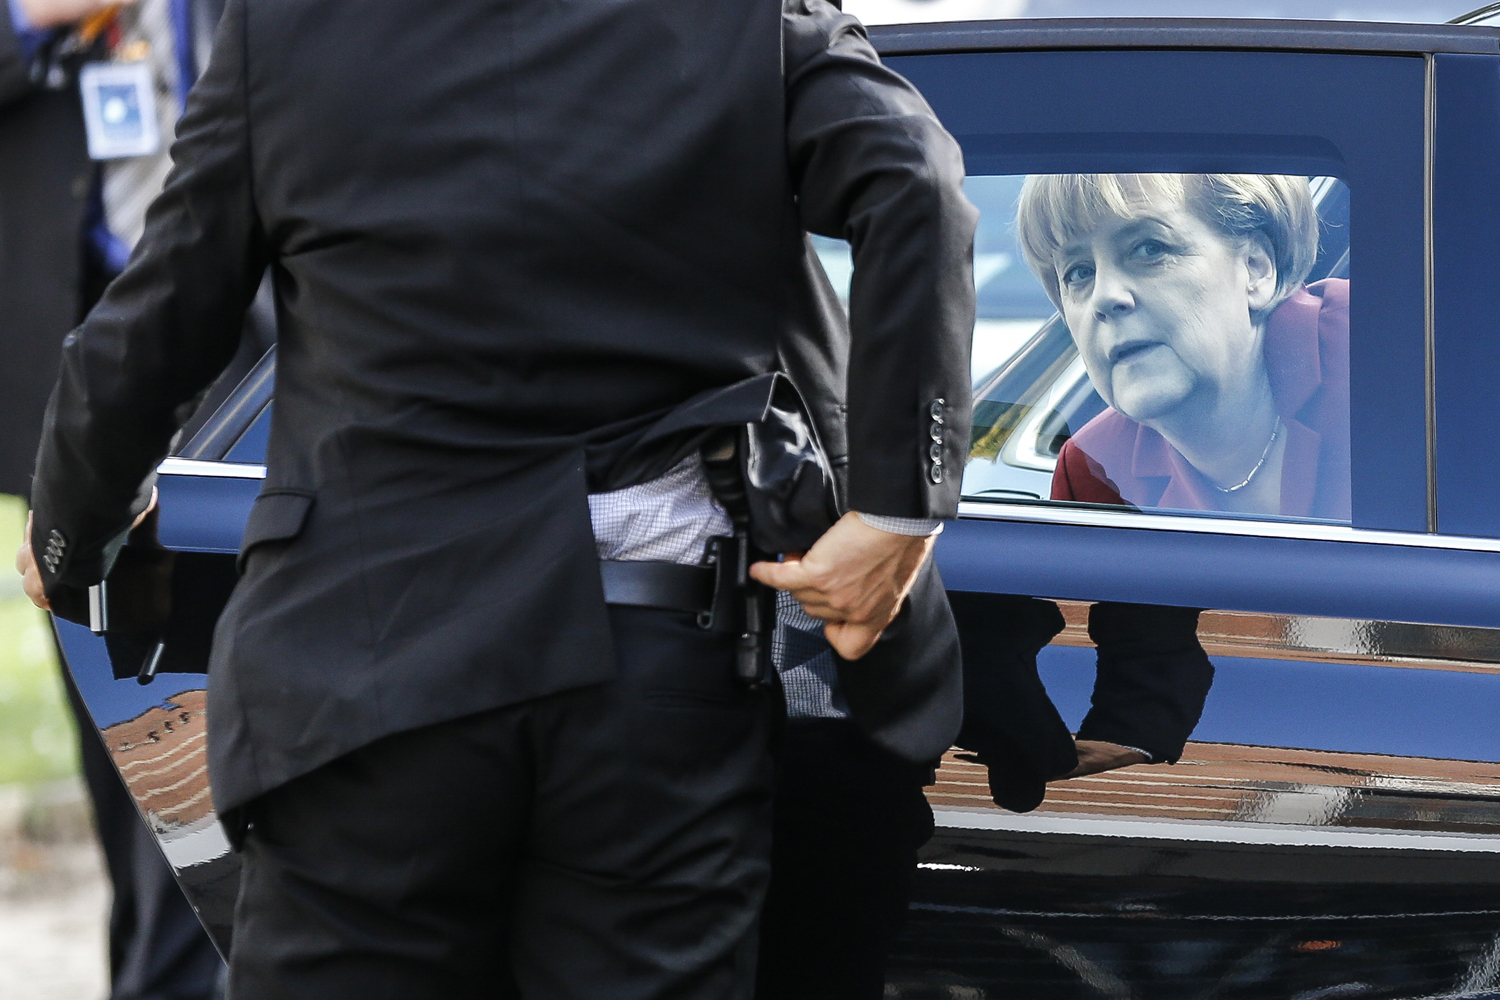 Oct. 24, 2013. German Chancellor Angela Merkel (R) arrives for a meeting of the European People's Party (EPP) ahead of a European Union summit at Meise, outside Brussels, Belgium.